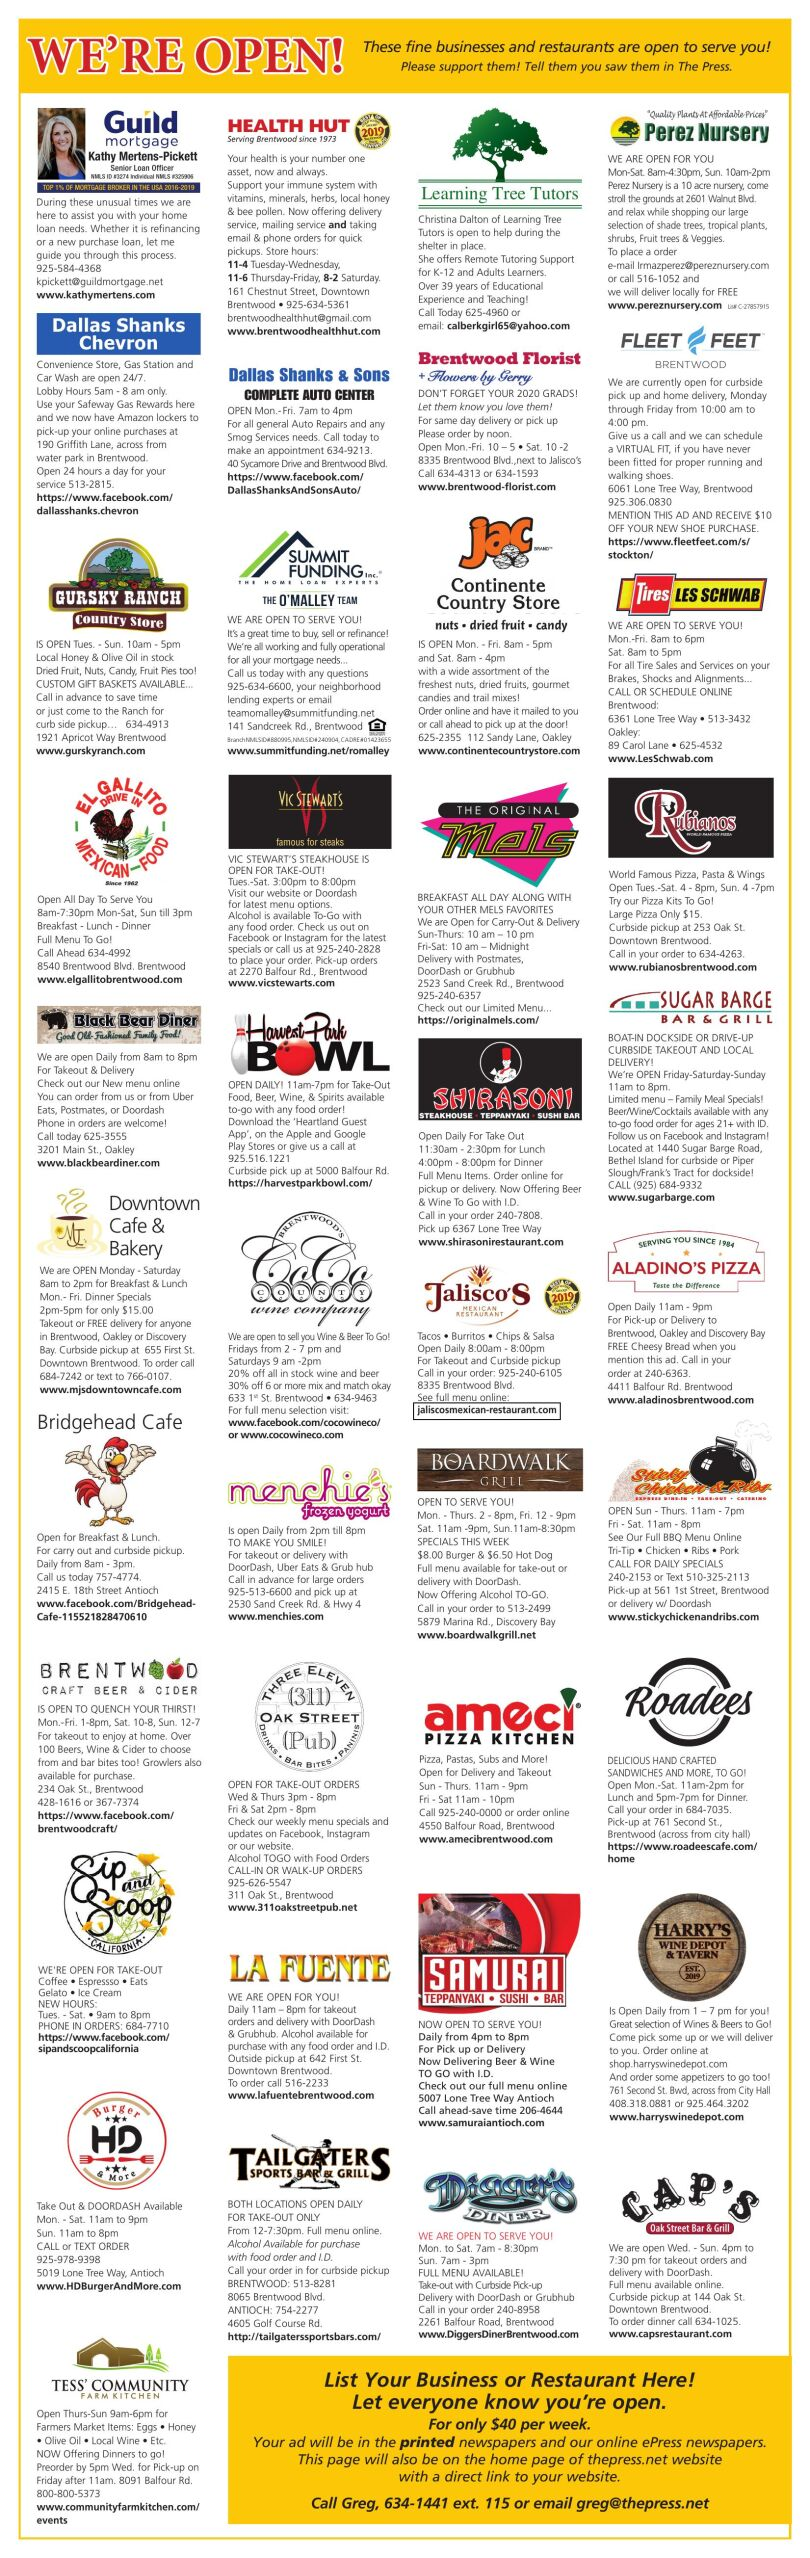 We're Open! These fine businesses and restaurants are open to serve you!